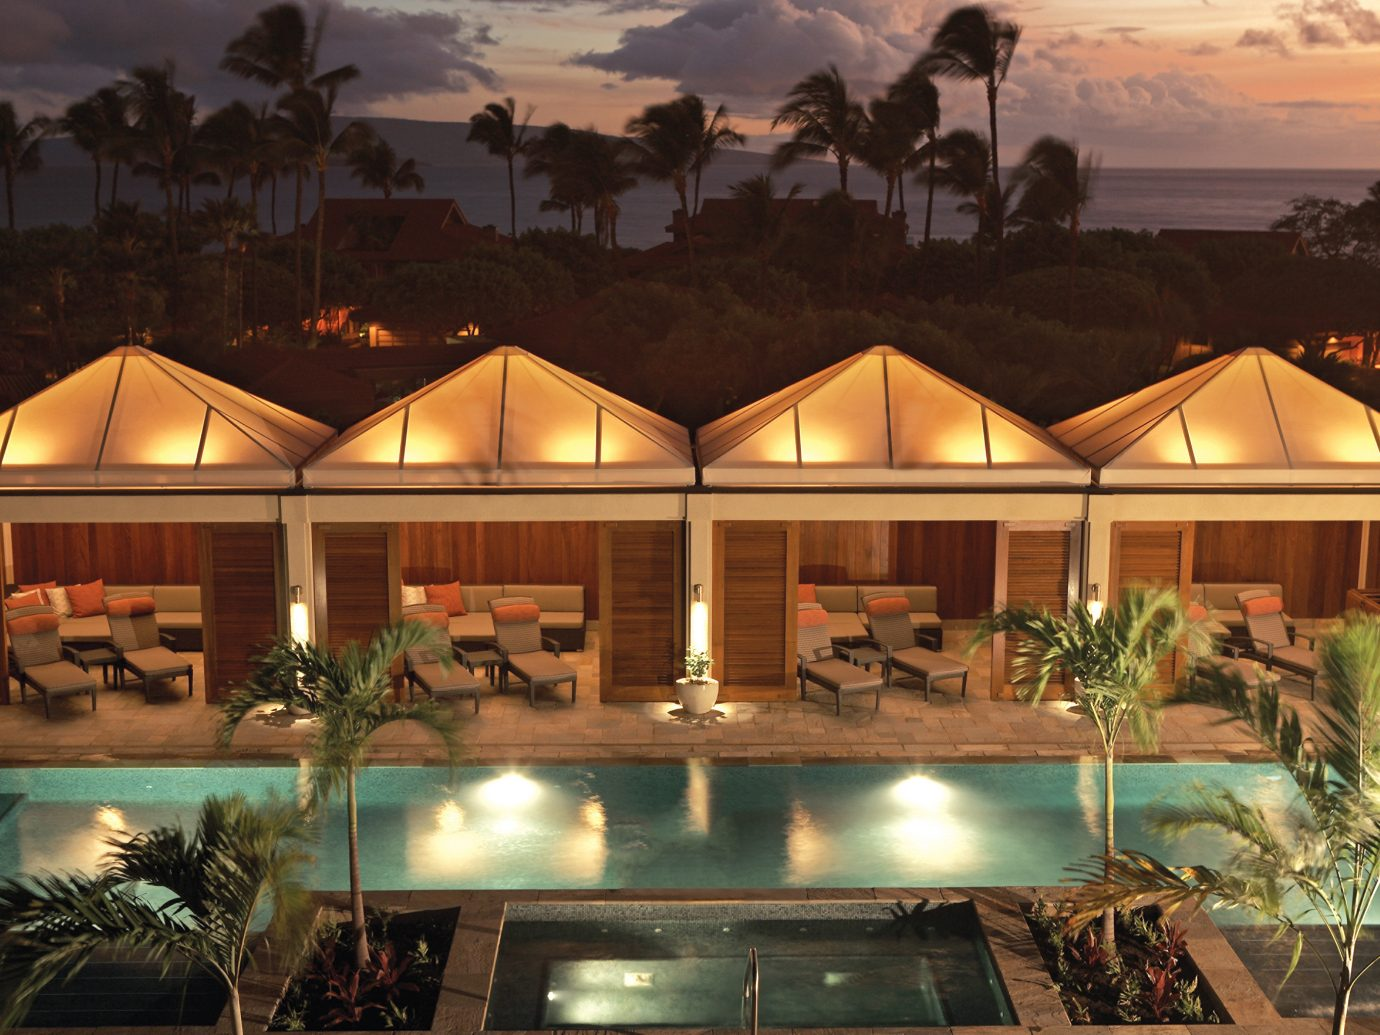 Hotels Island Lounge Patio Pool Romance Tropical outdoor light estate Resort lighting home